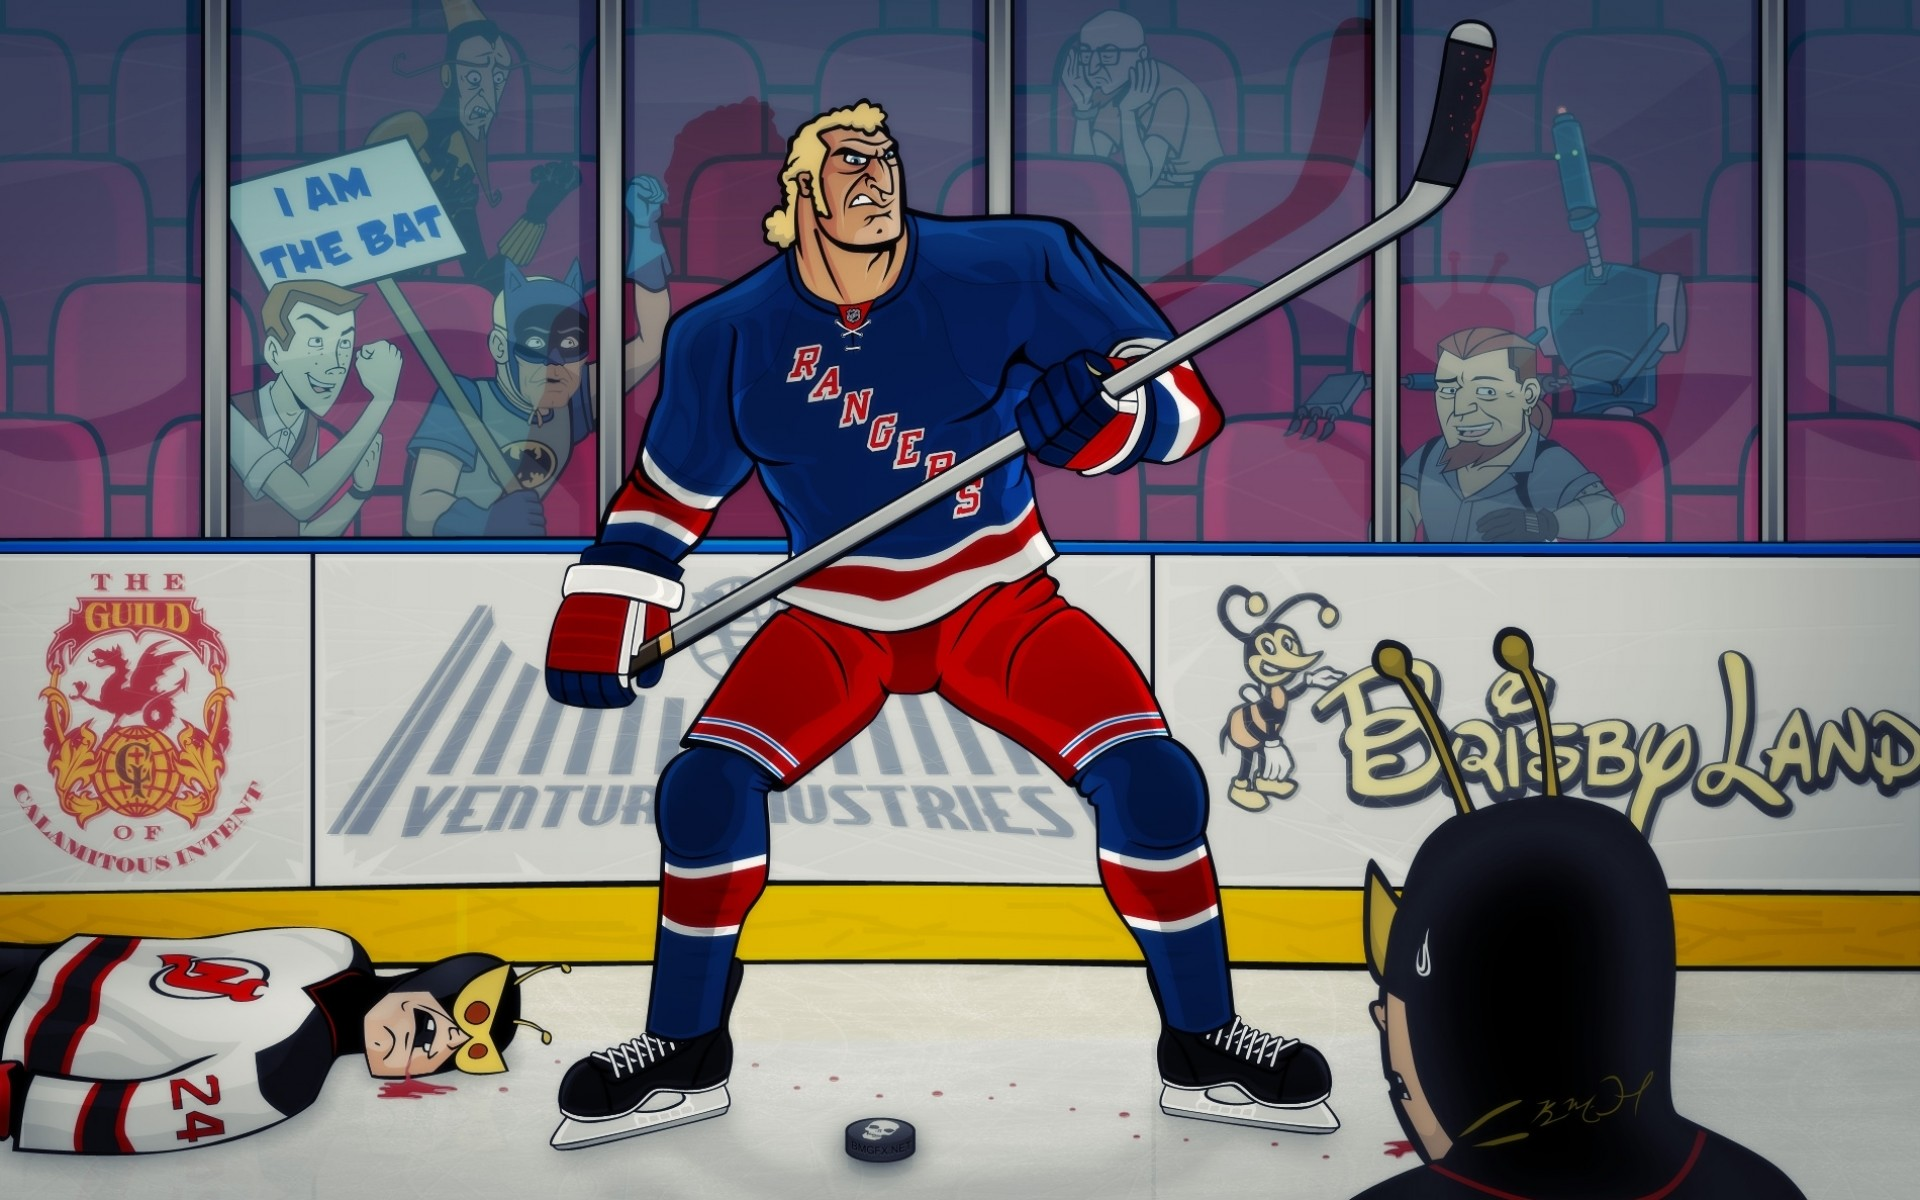 1920x1200 Hockey nhl the venture bros new york rangers g wallpaper |  |  128757 | WallpaperUP